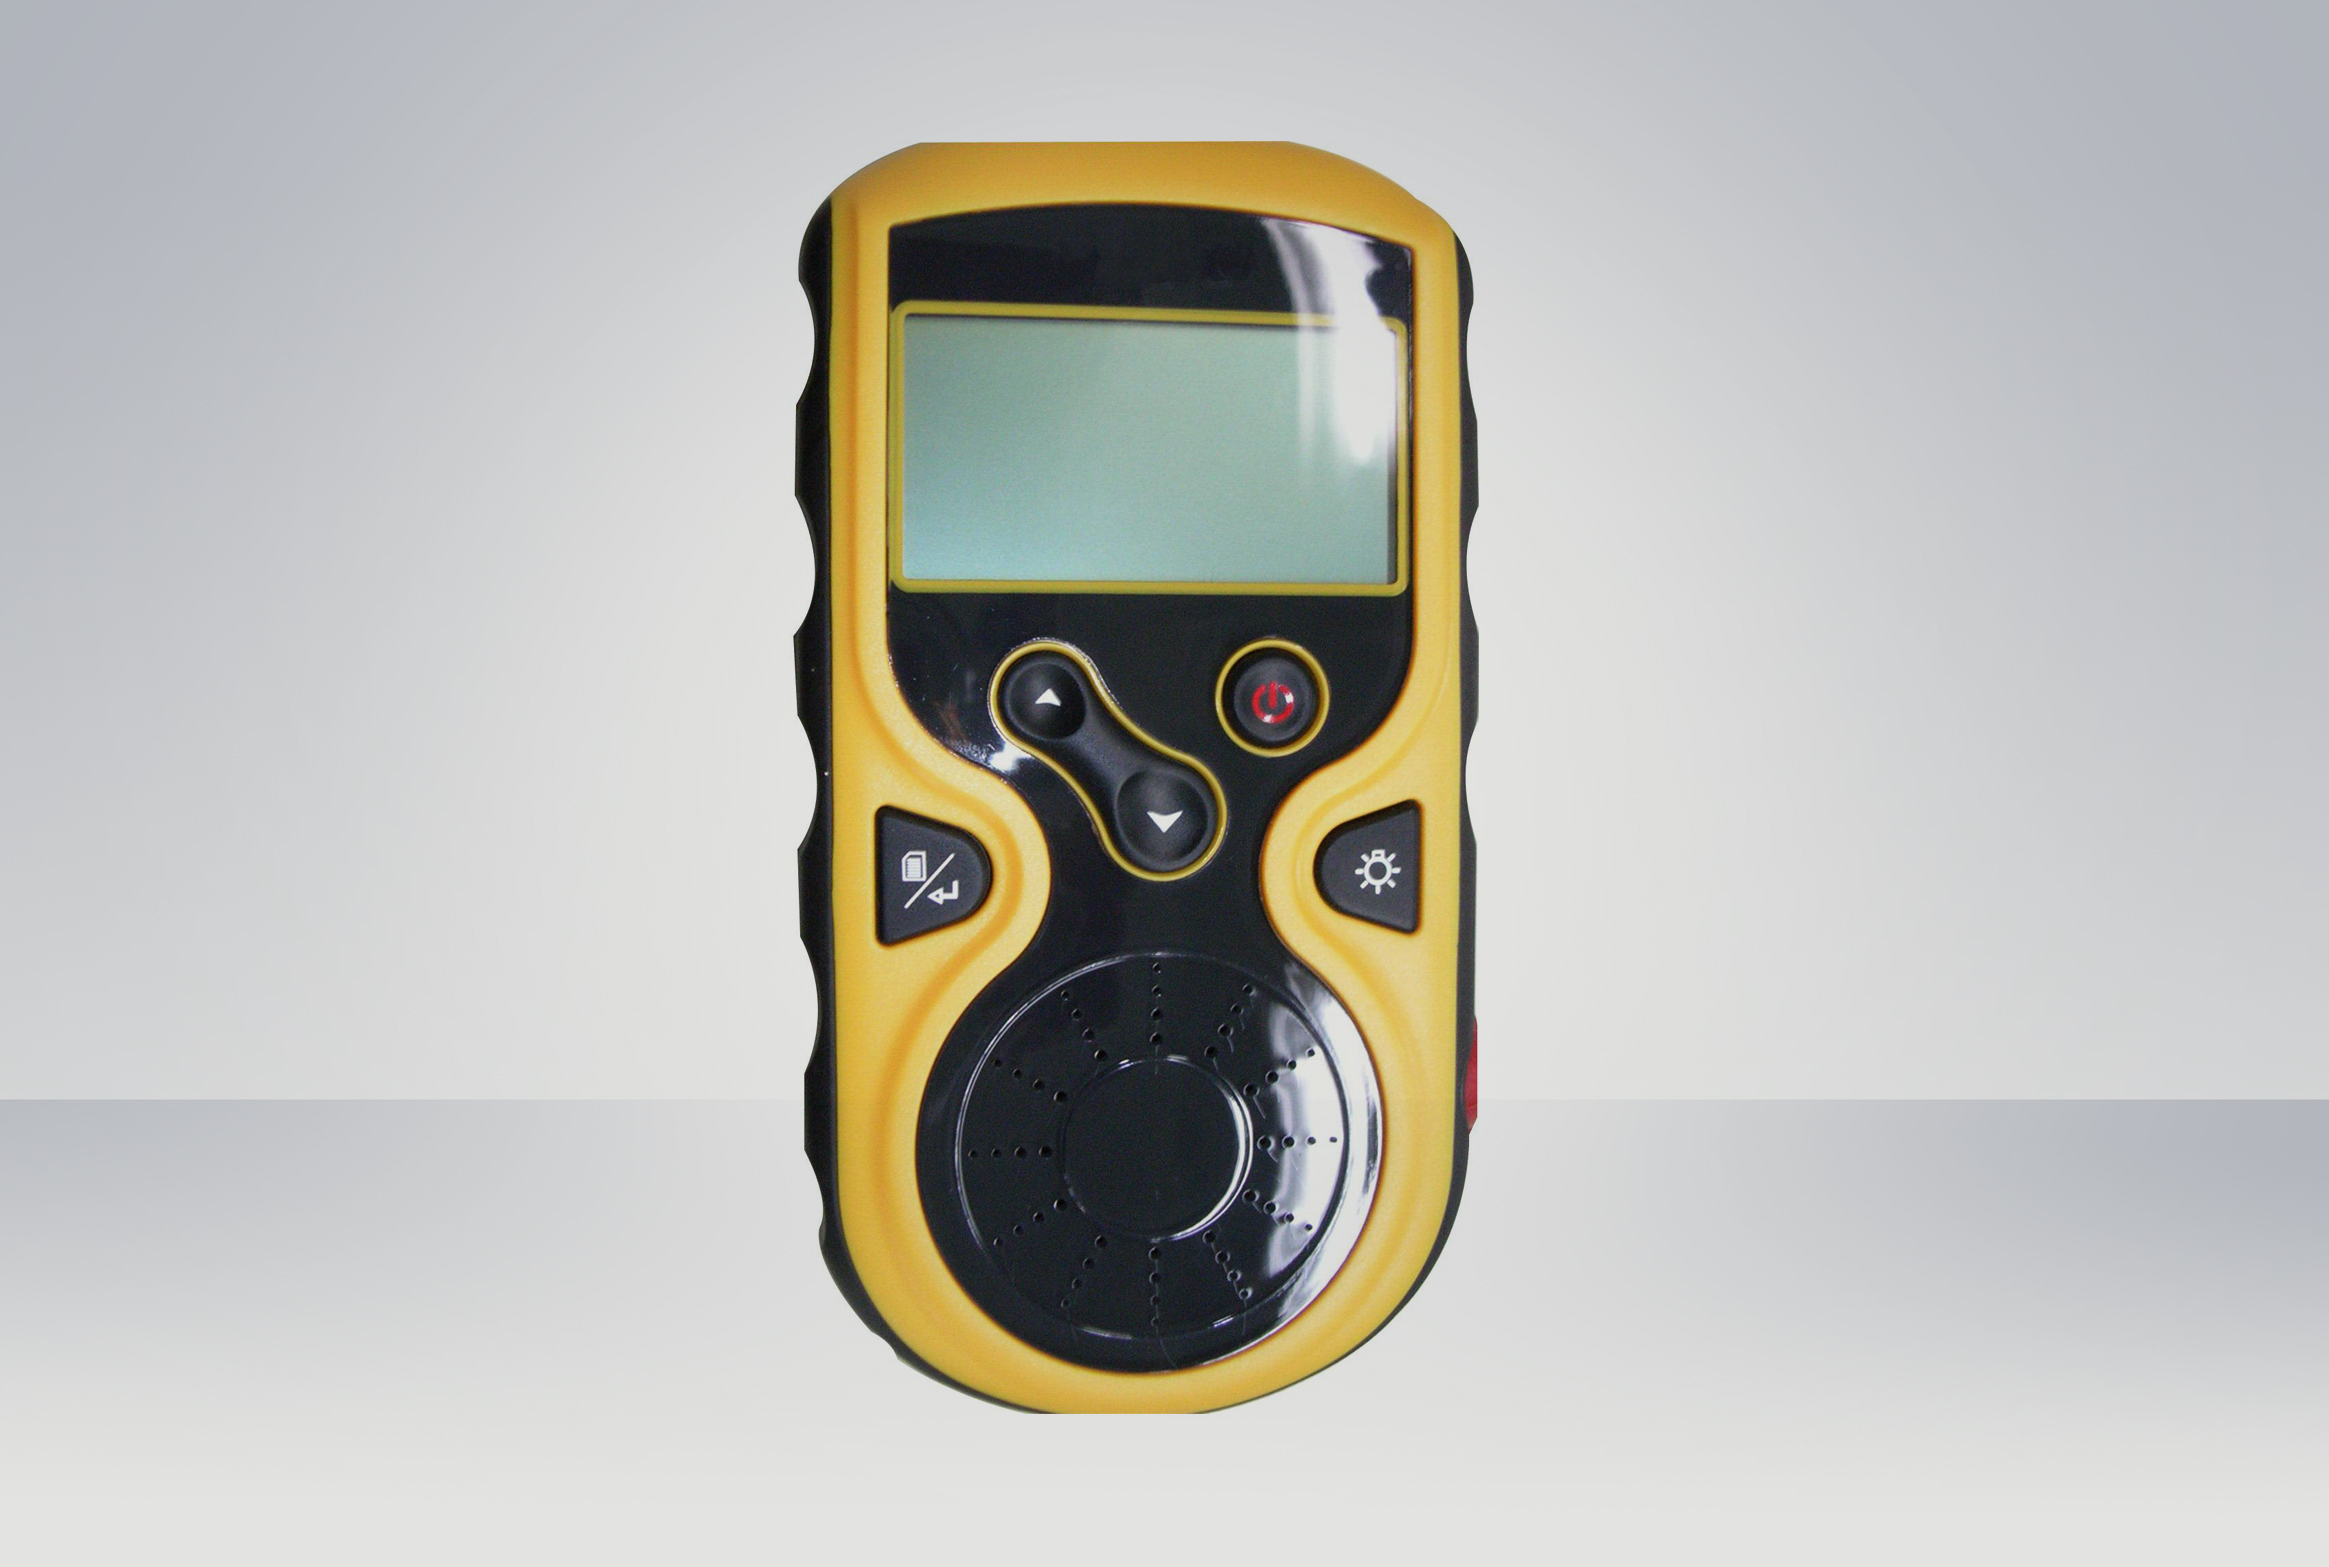 Handheld Oximeters